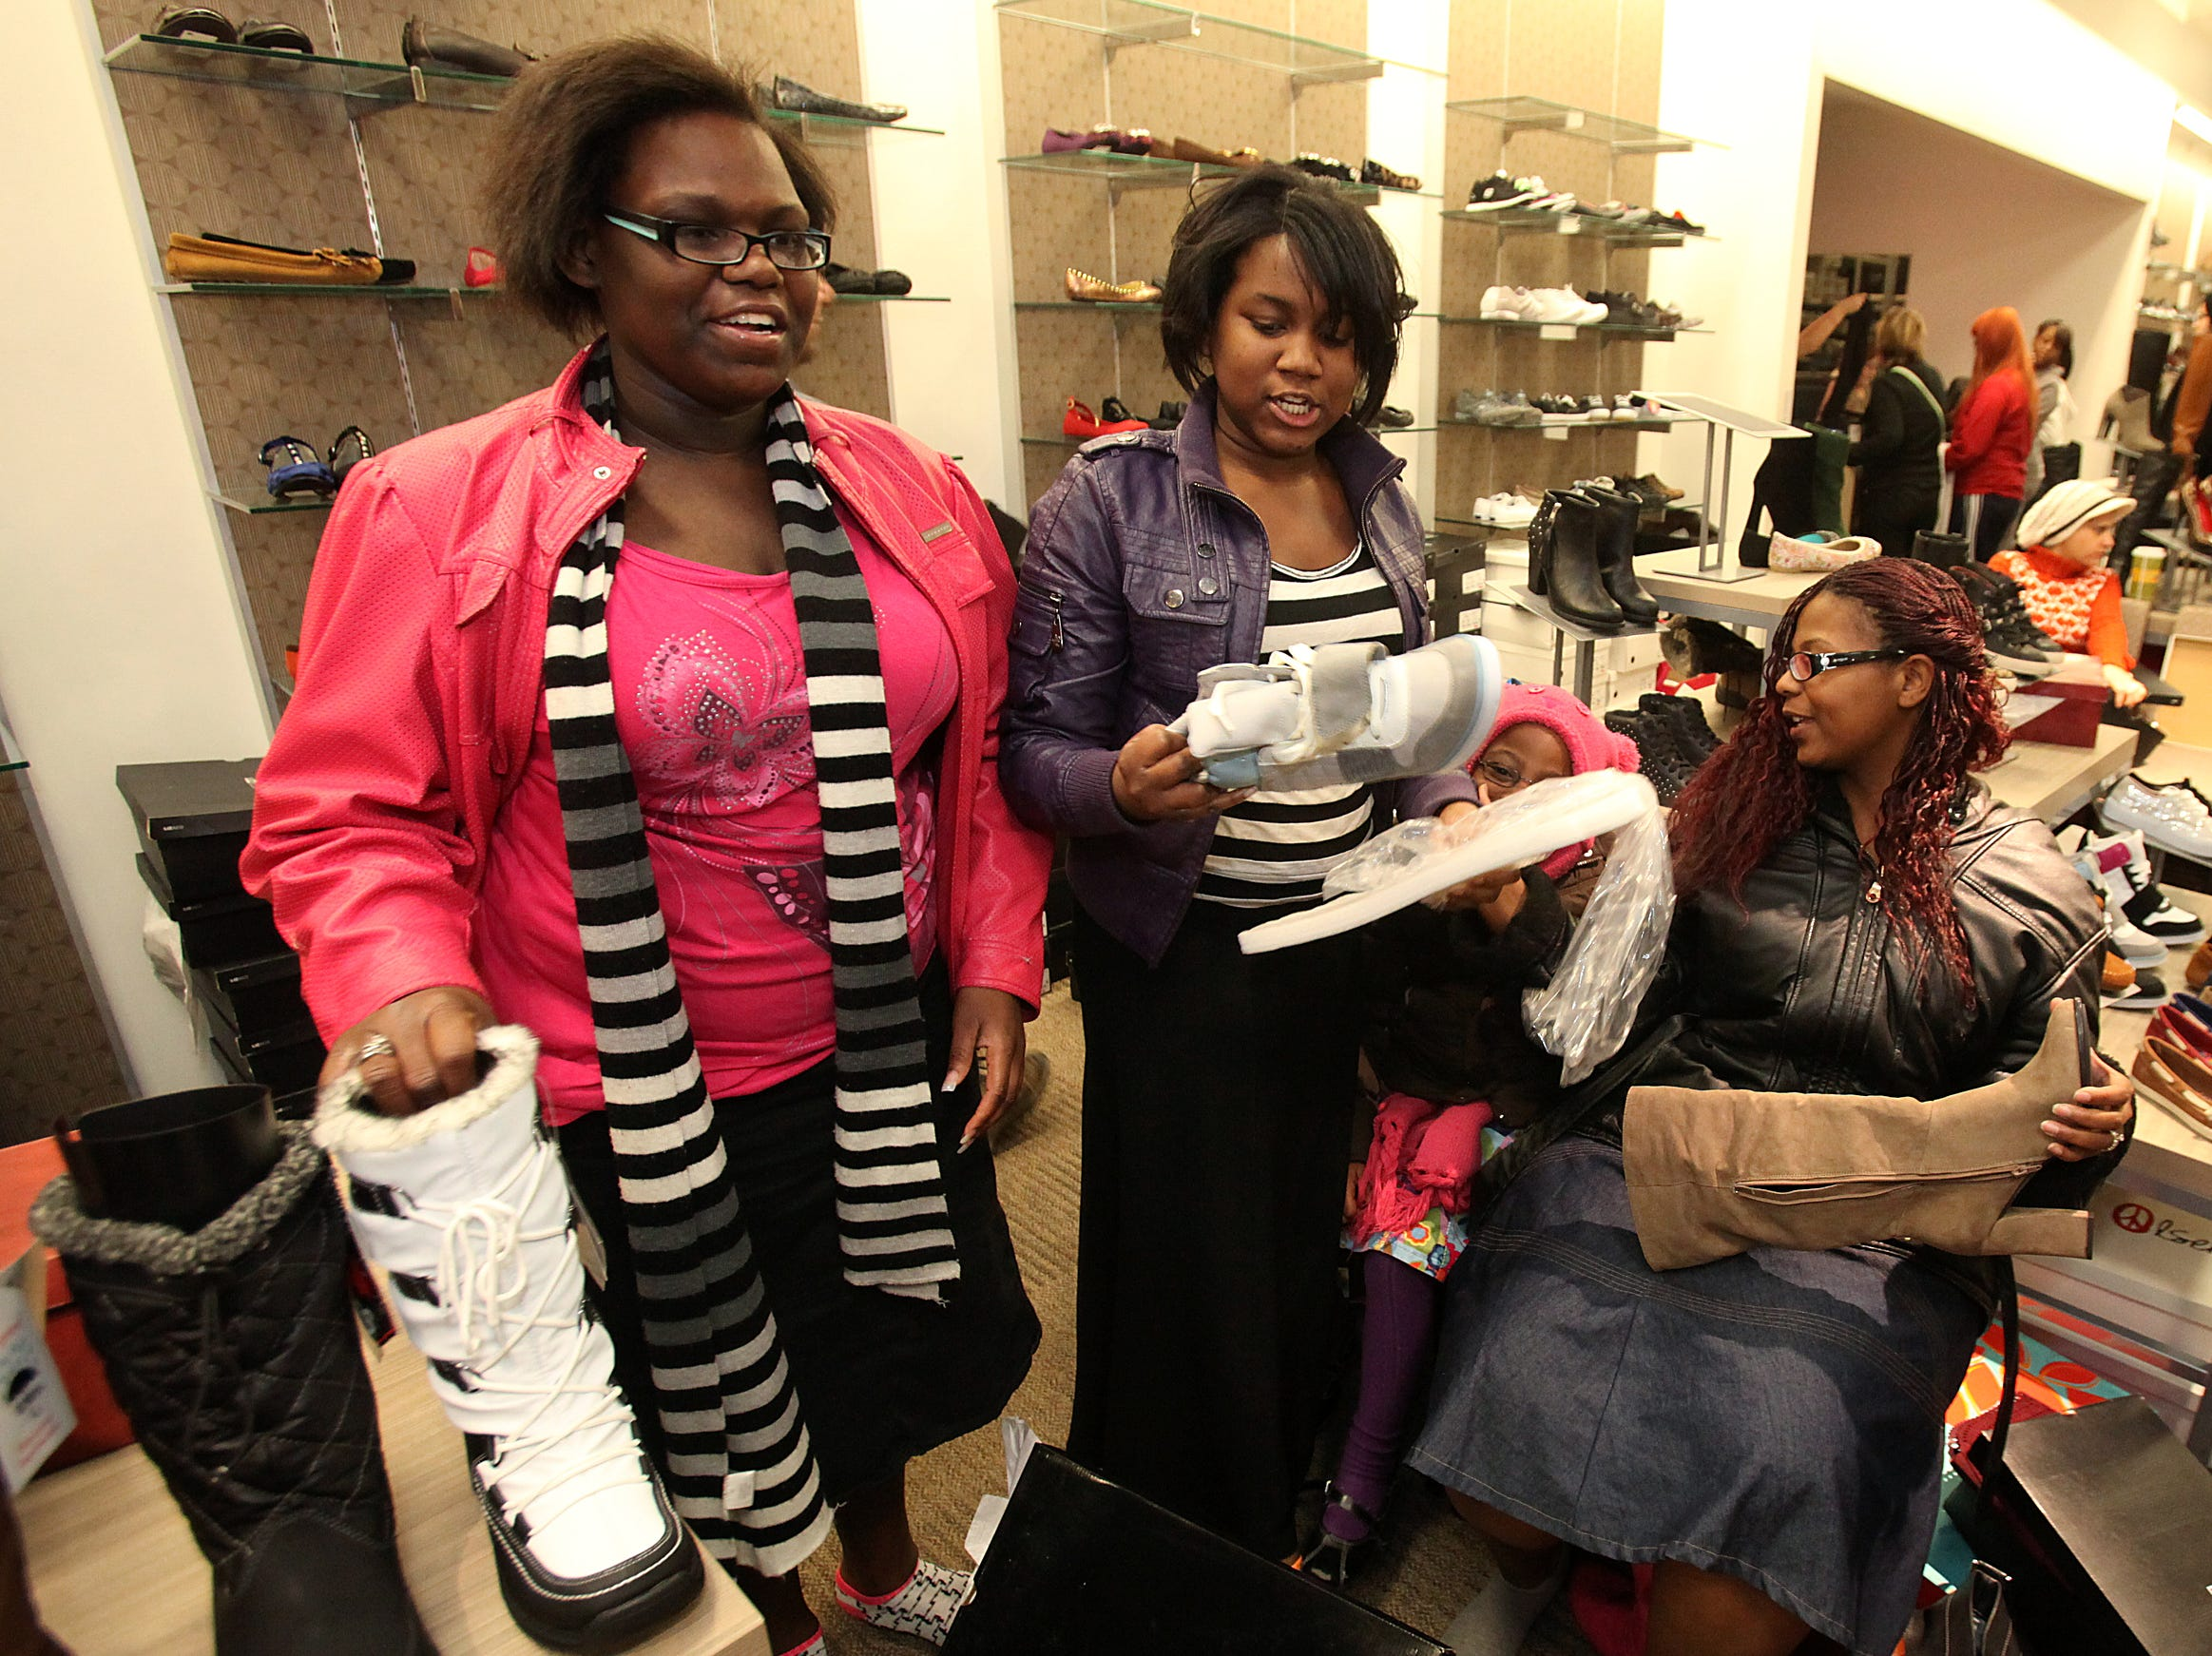 Destiny Philpot, left, and her sister, Dakeyah, look over some shoes while Azariyah Mills, 6, and Matanyah Lee (seated) look over a pair of boots while shopping at Valley West Mall on Nov. 24, 2012.